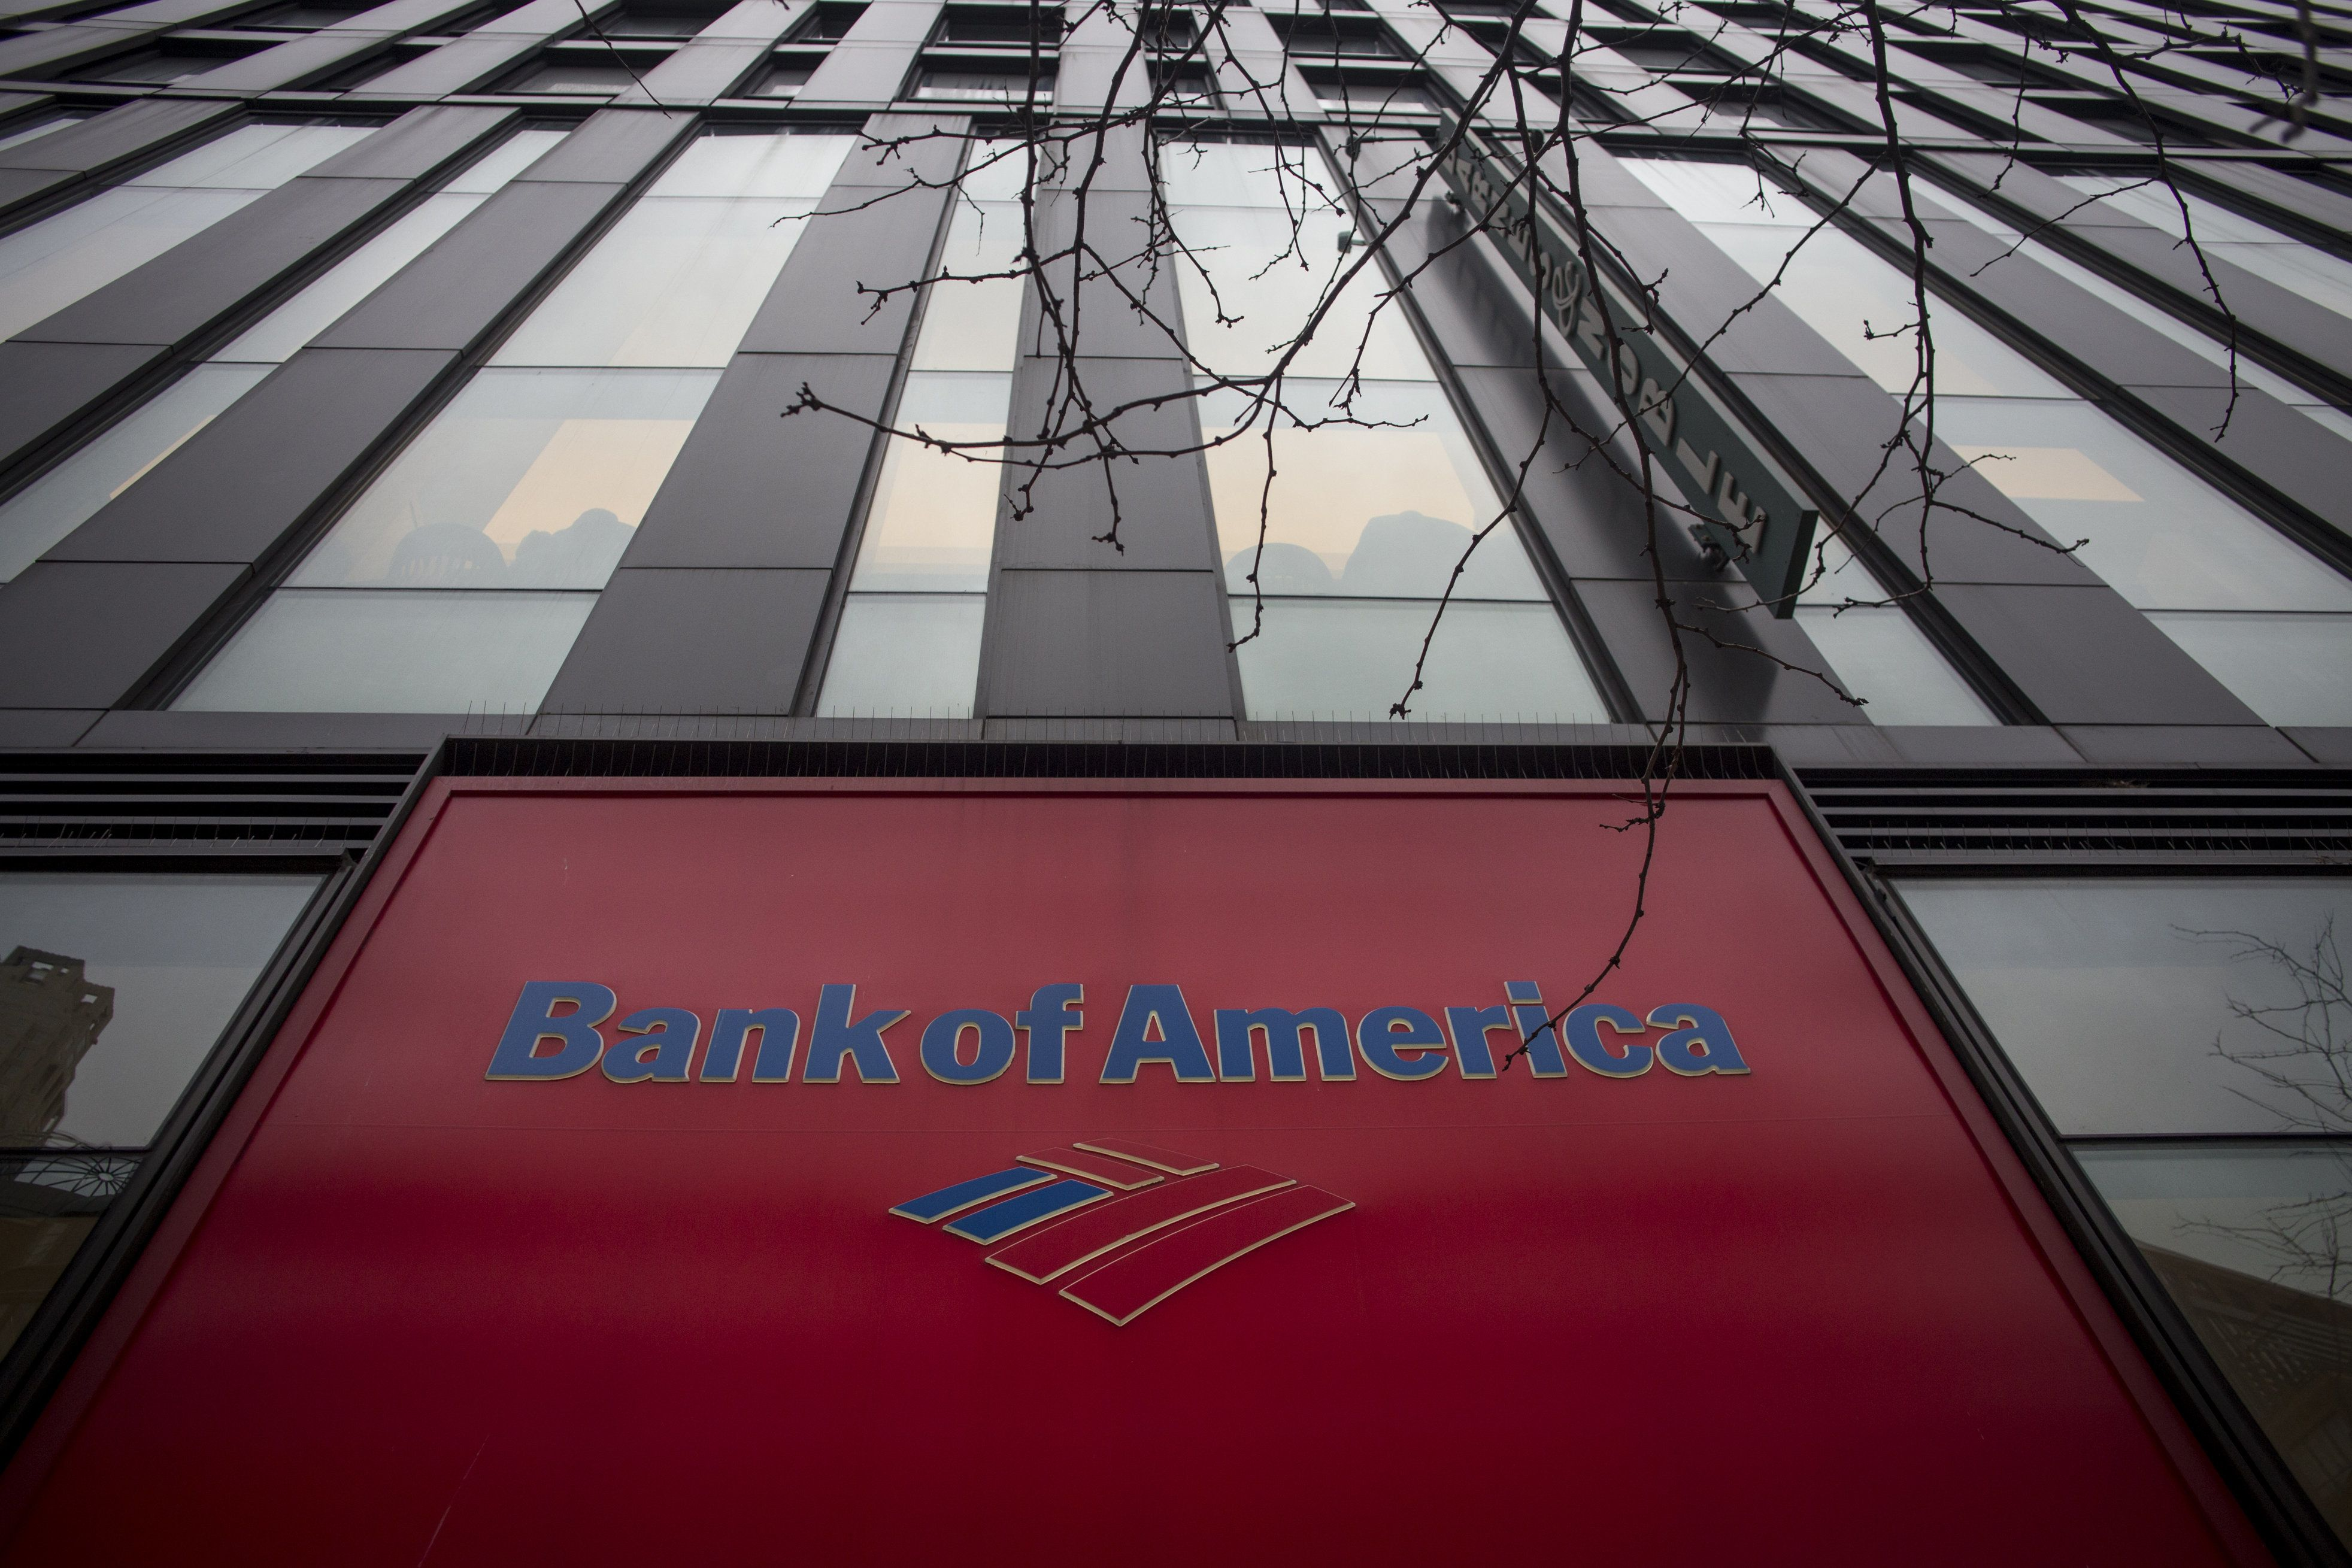 Bank of America Corp. signage is displayed on the company's branch in New York, U.S., on Friday, Jan. 12, 2016. Bank of America is scheduled to report earnings data on January 19. Photographer: John Taggart/Bloomberg via Getty Images